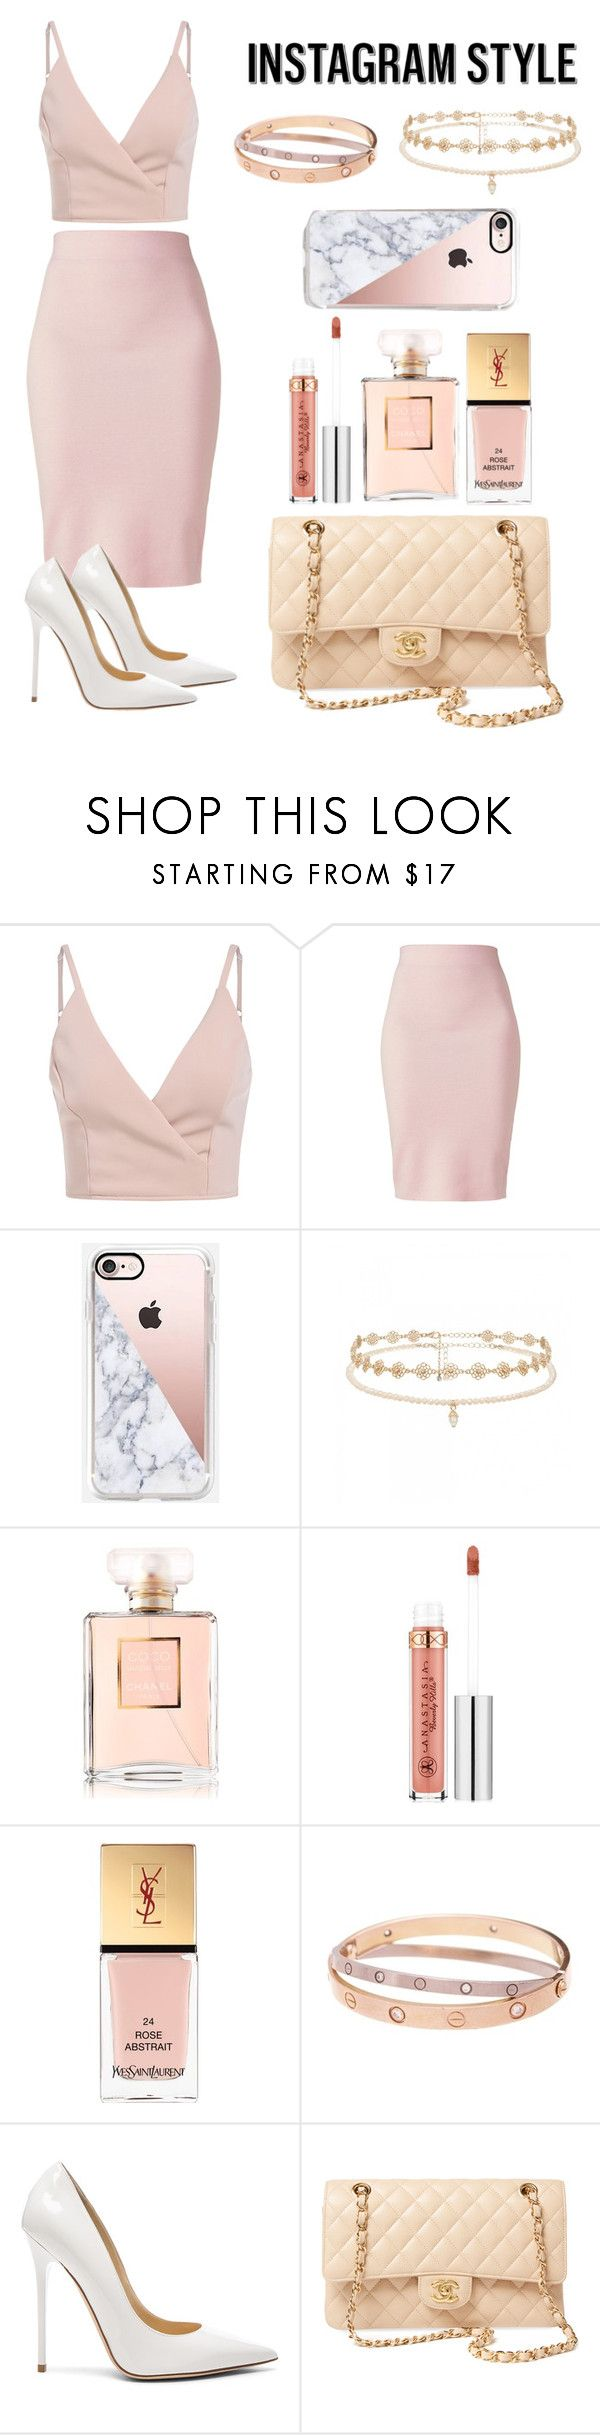 """""""Insta Ready"""" by cindyc111002 ❤ liked on Polyvore featuring Winser London, Casetify, Forever New, Chanel, Anastasia Beverly Hills, Yves Saint Laurent, Cartier, Jimmy Choo, 60secondstyle and PVShareYourStyle"""